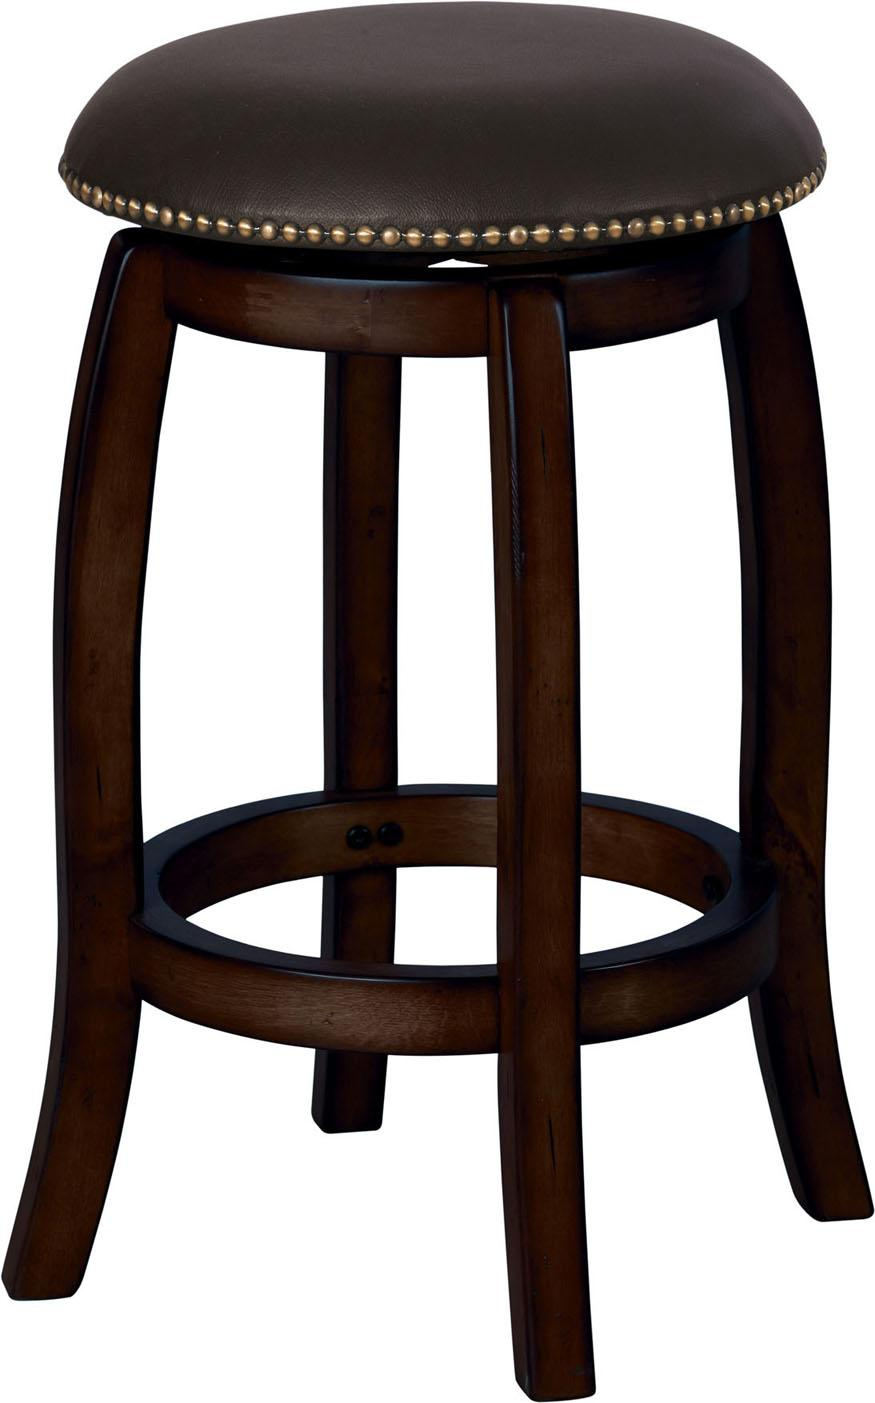 Acme Furniture Chelsea Leather Swivel Counter Stool - Item Number: 07246